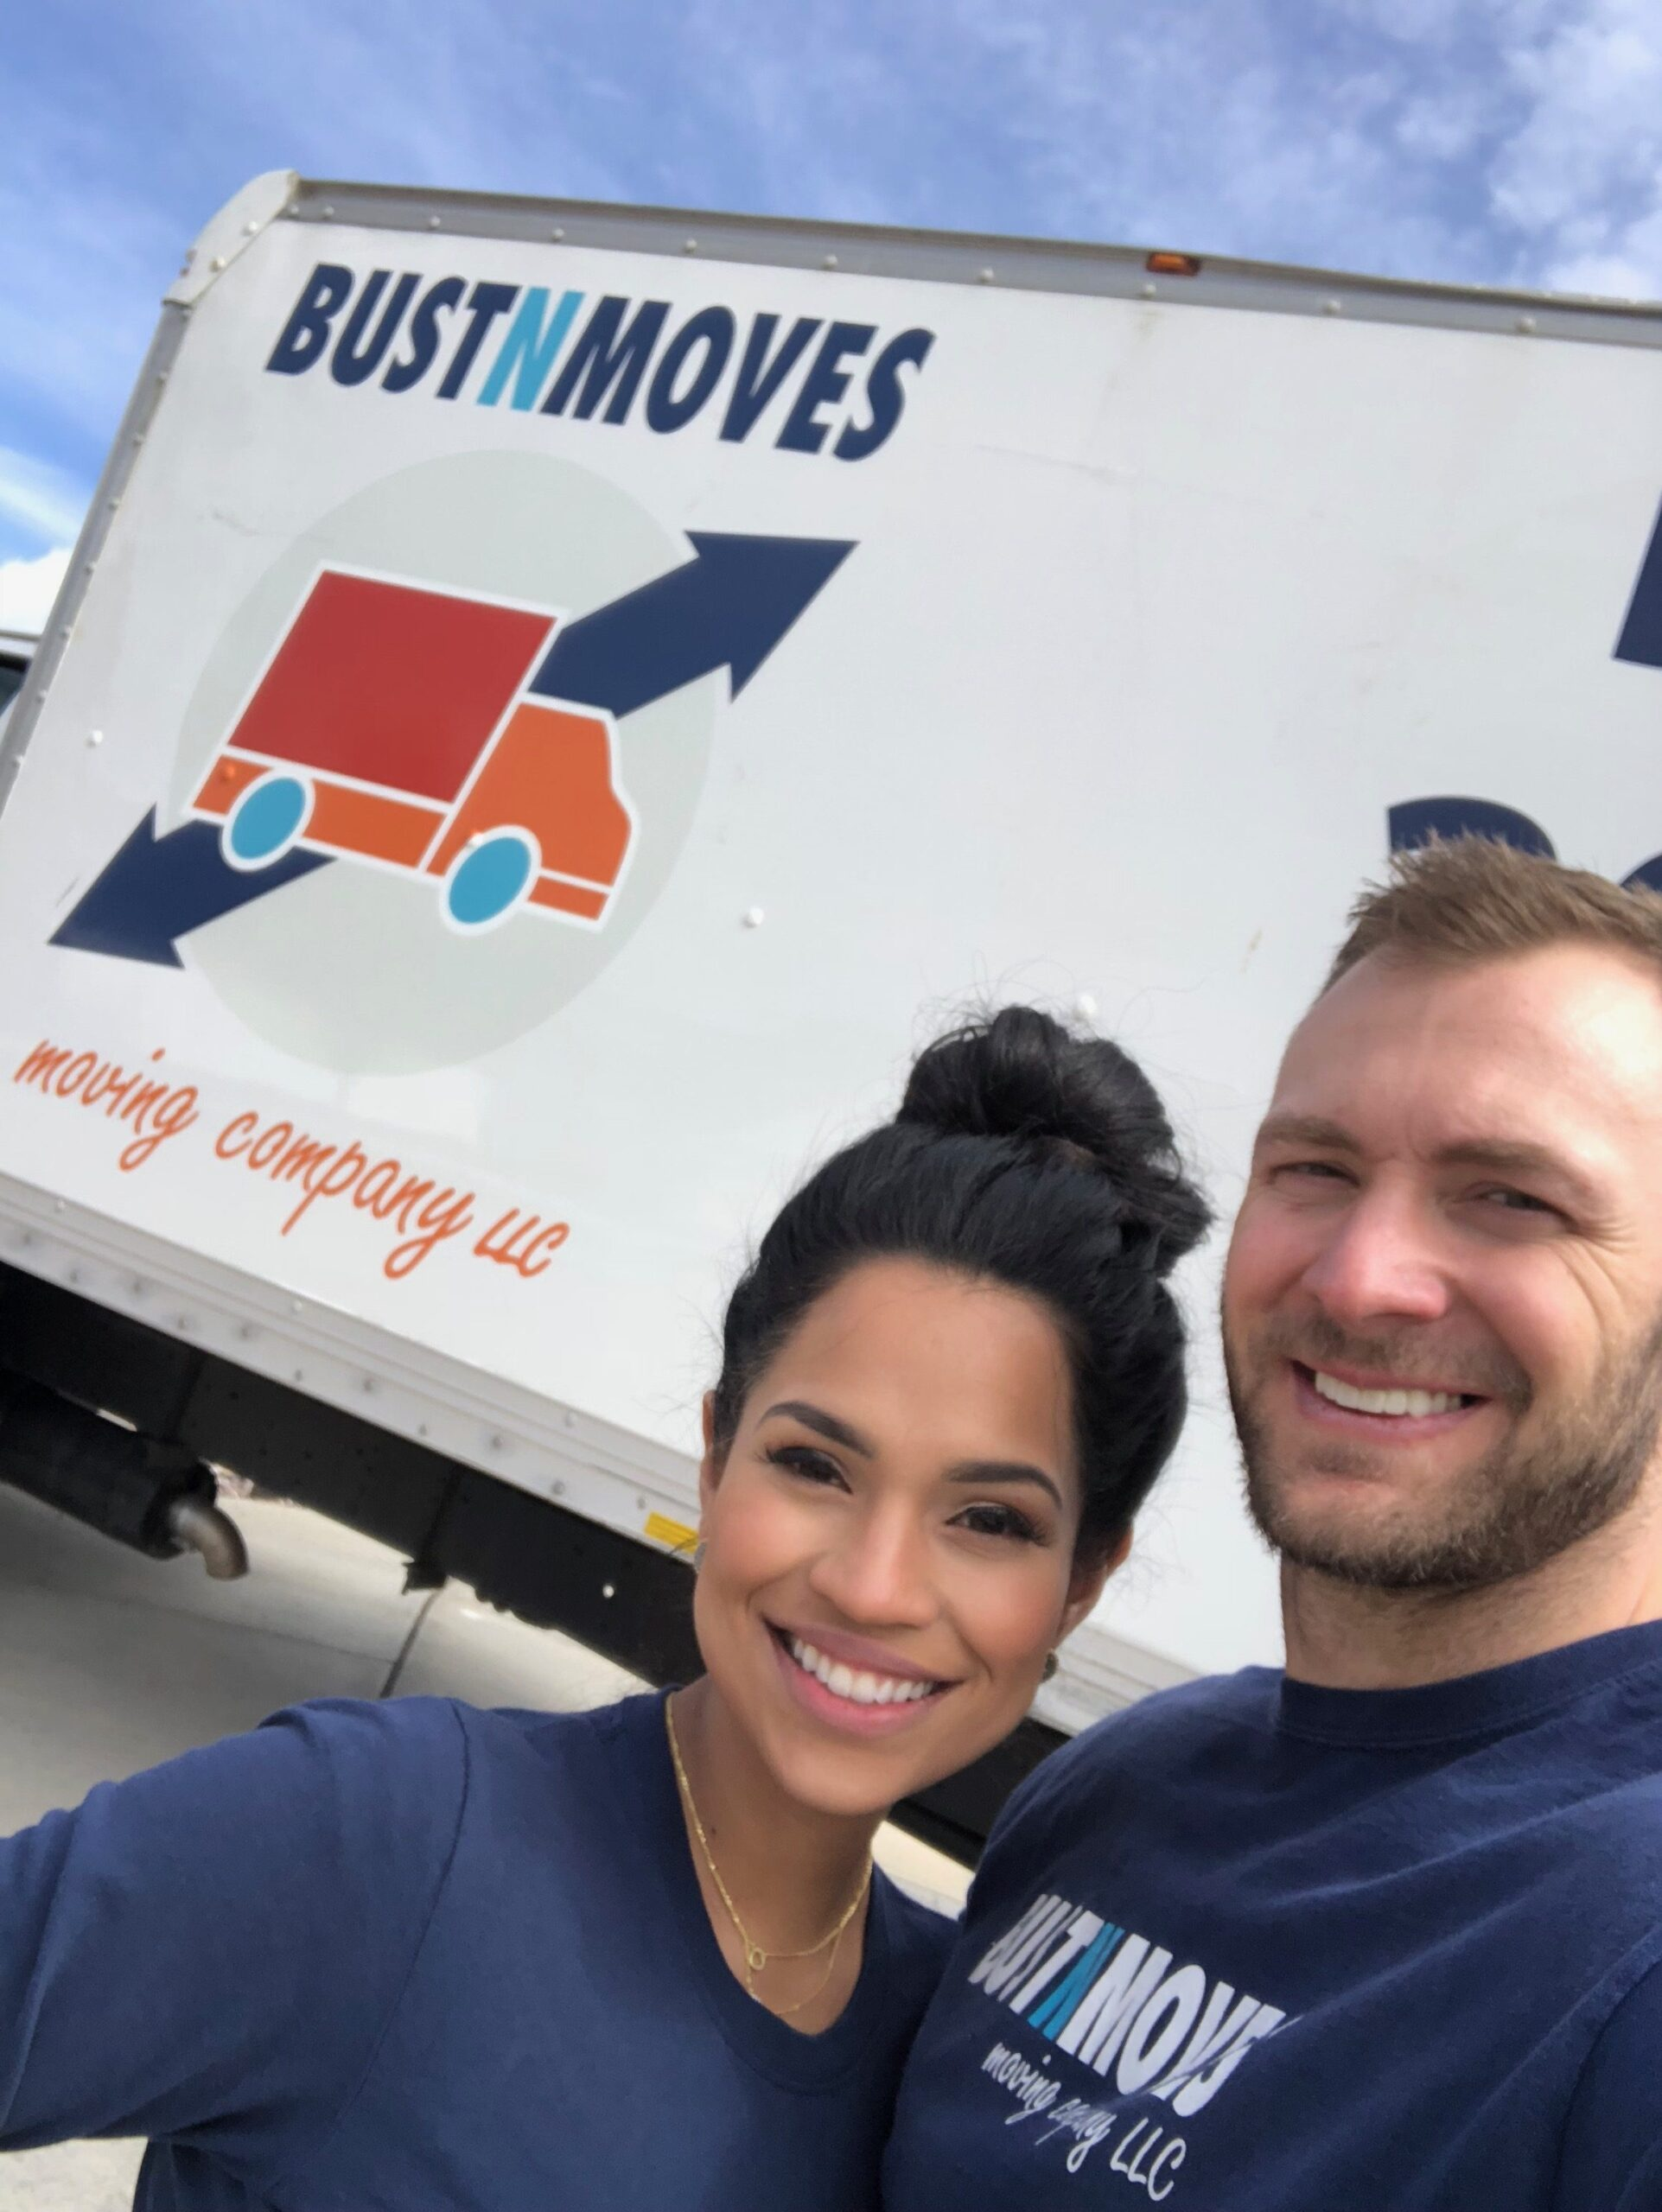 BustNMoves Moving Co